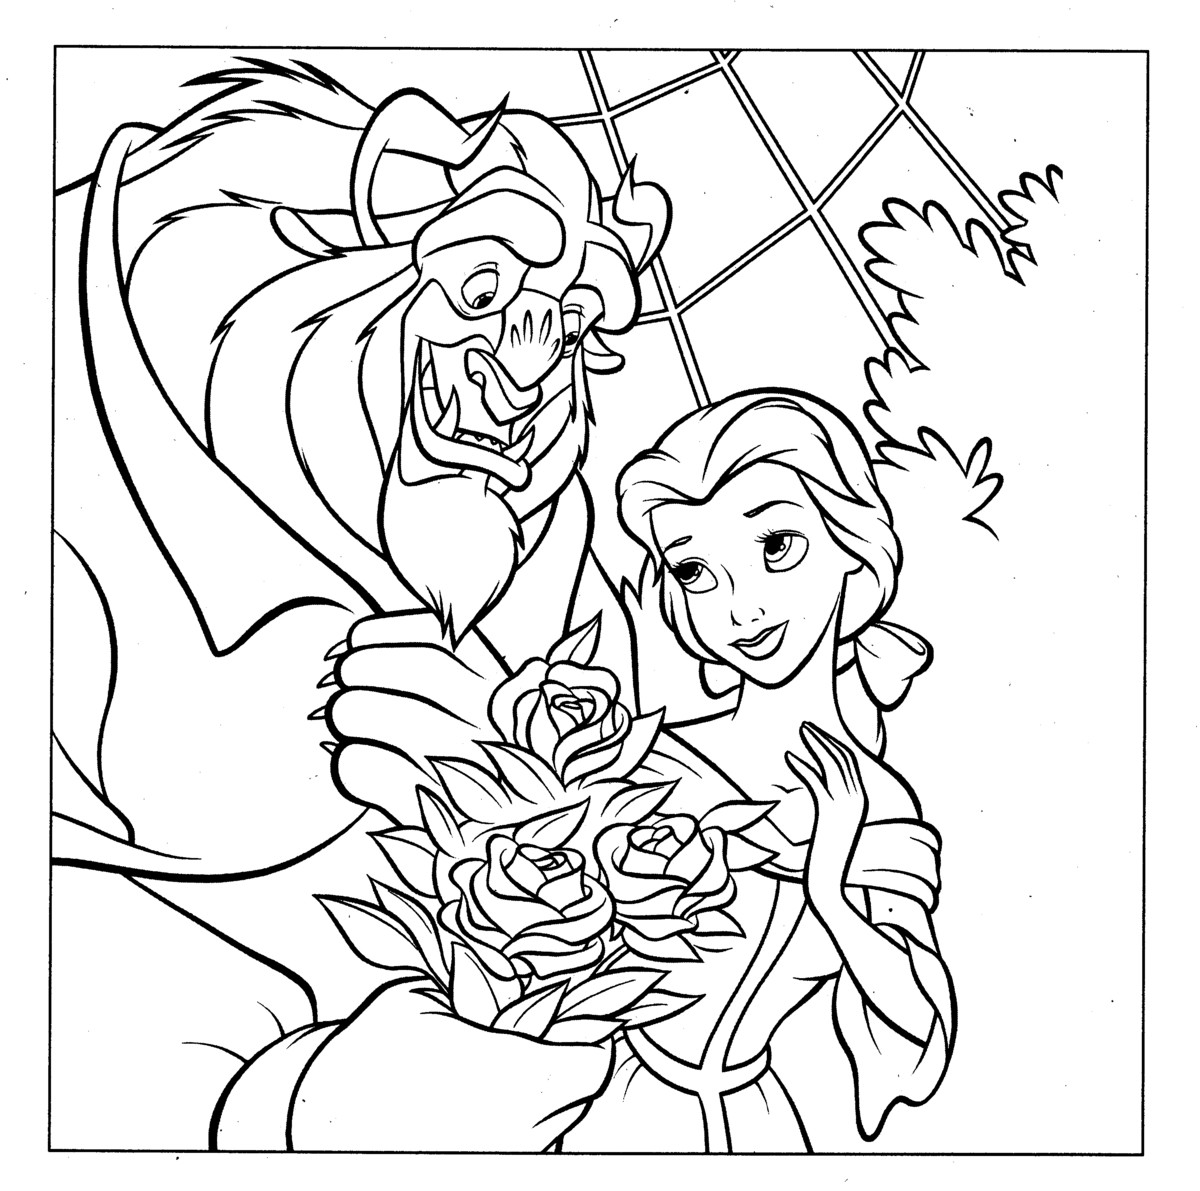 Disney coloring pages online coloring pages gallery for Free online coloring pages disney